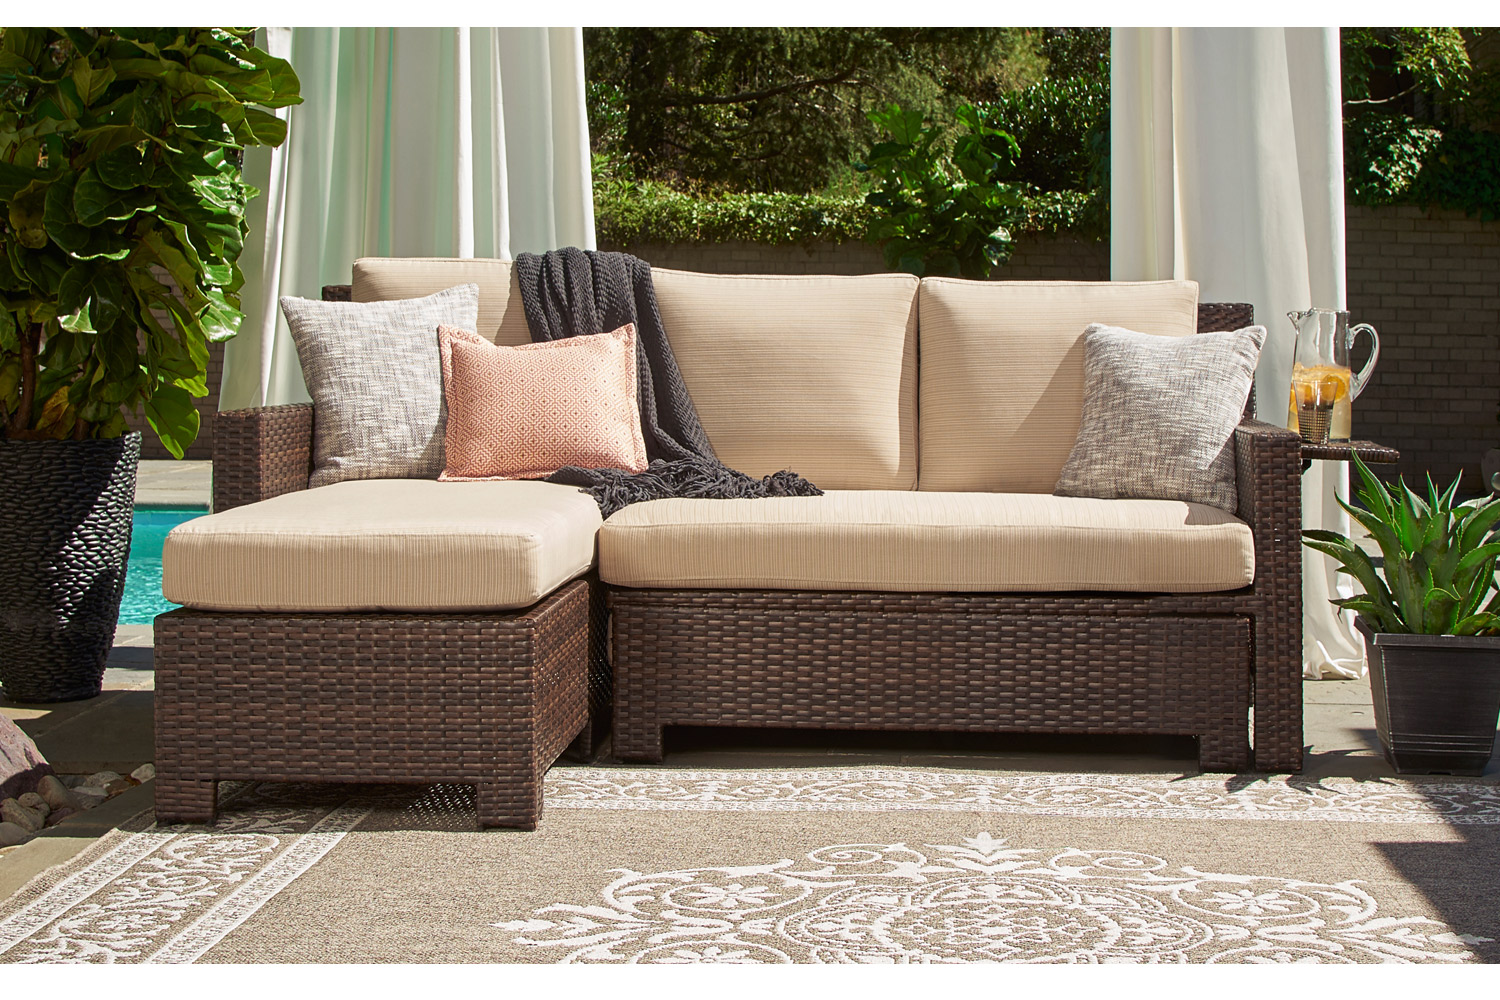 Futon Sectional Sofas Couch Futons Lounge Chairs Mattresses And Platform Beds